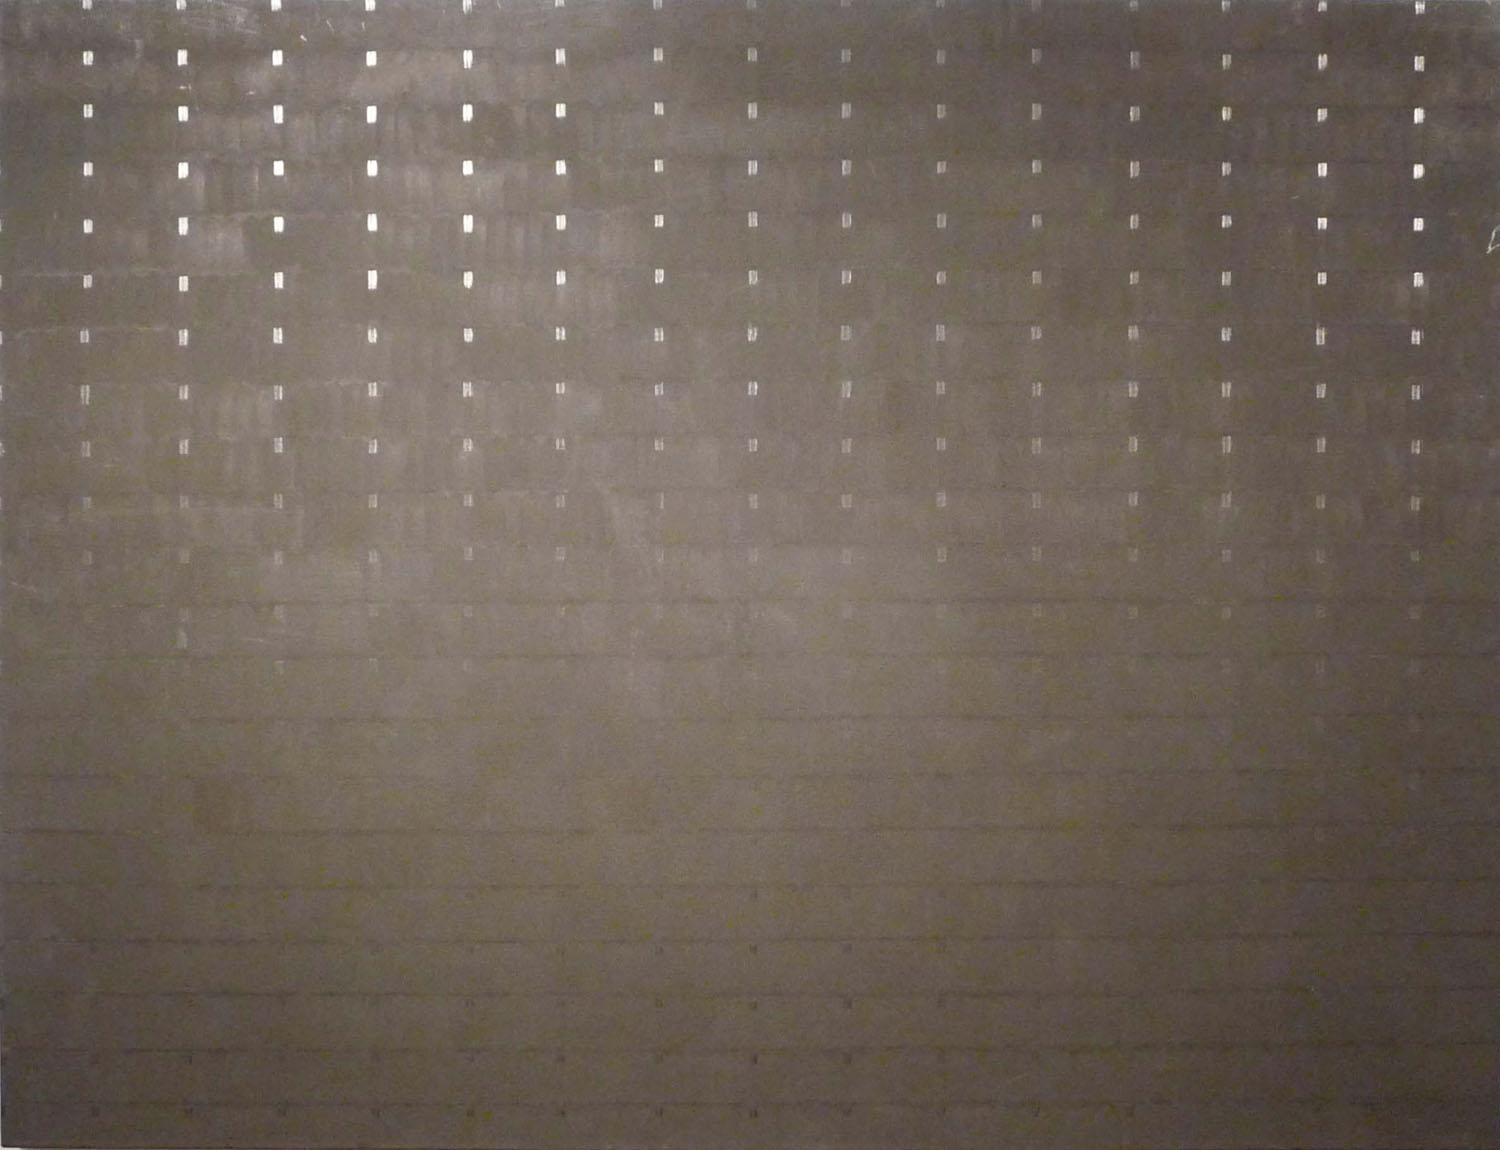 Ciaran Lenon_Graphite And French Black_1987-1988_oil and graphite on canvas_111 x 144cm_€8,000.jpg